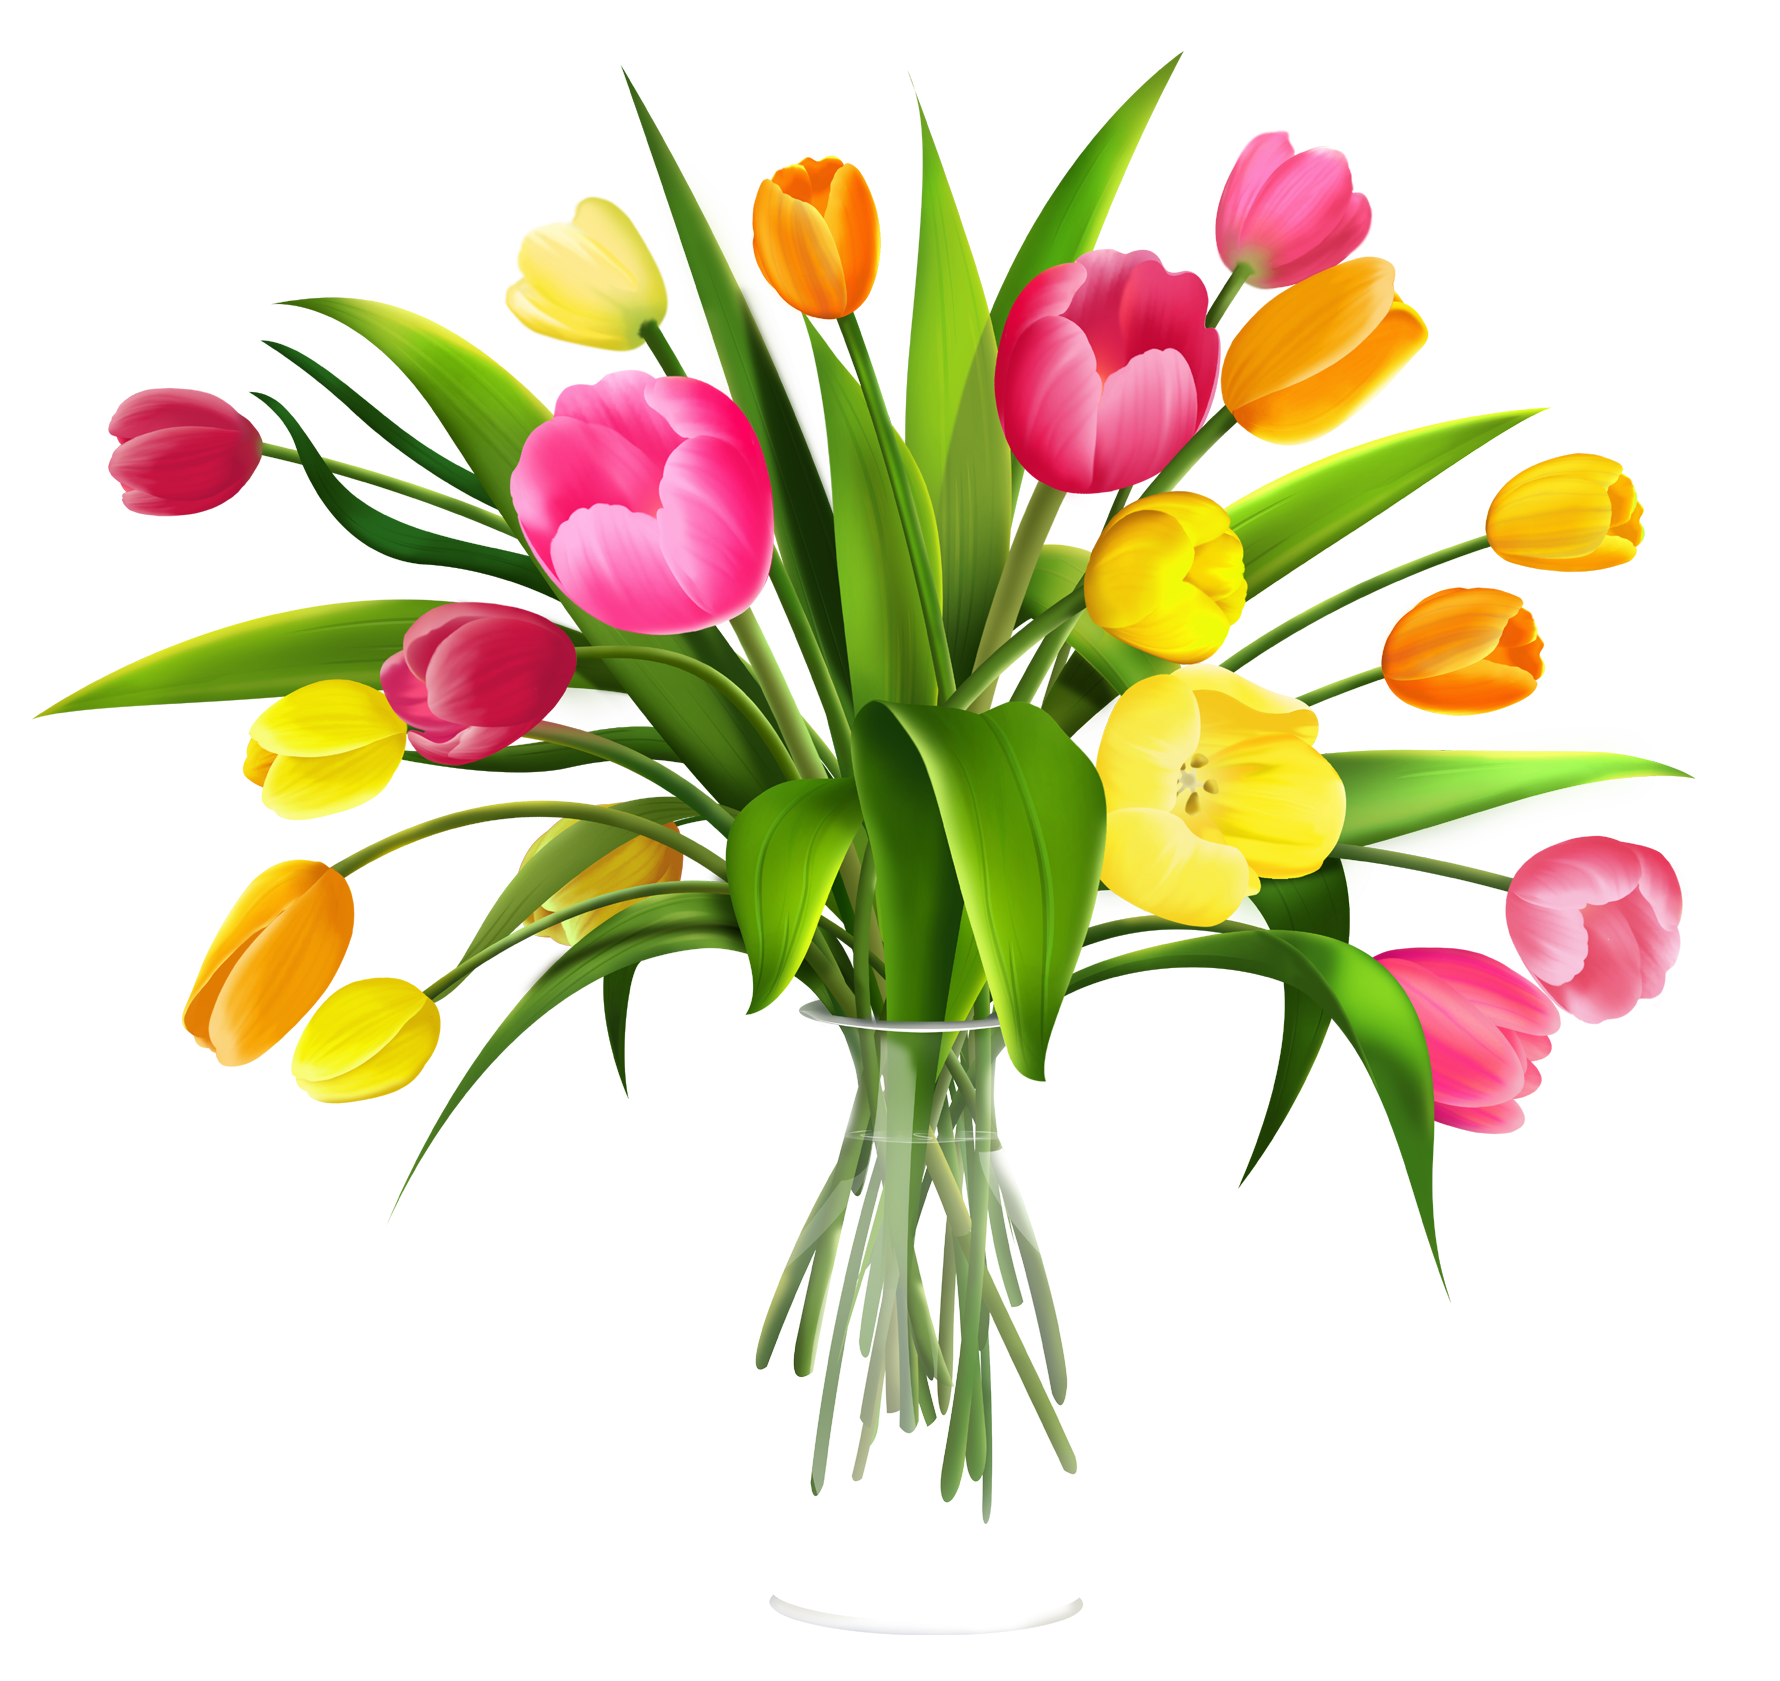 Japanese Flower Clipart At Getdrawings Free For Personal Use